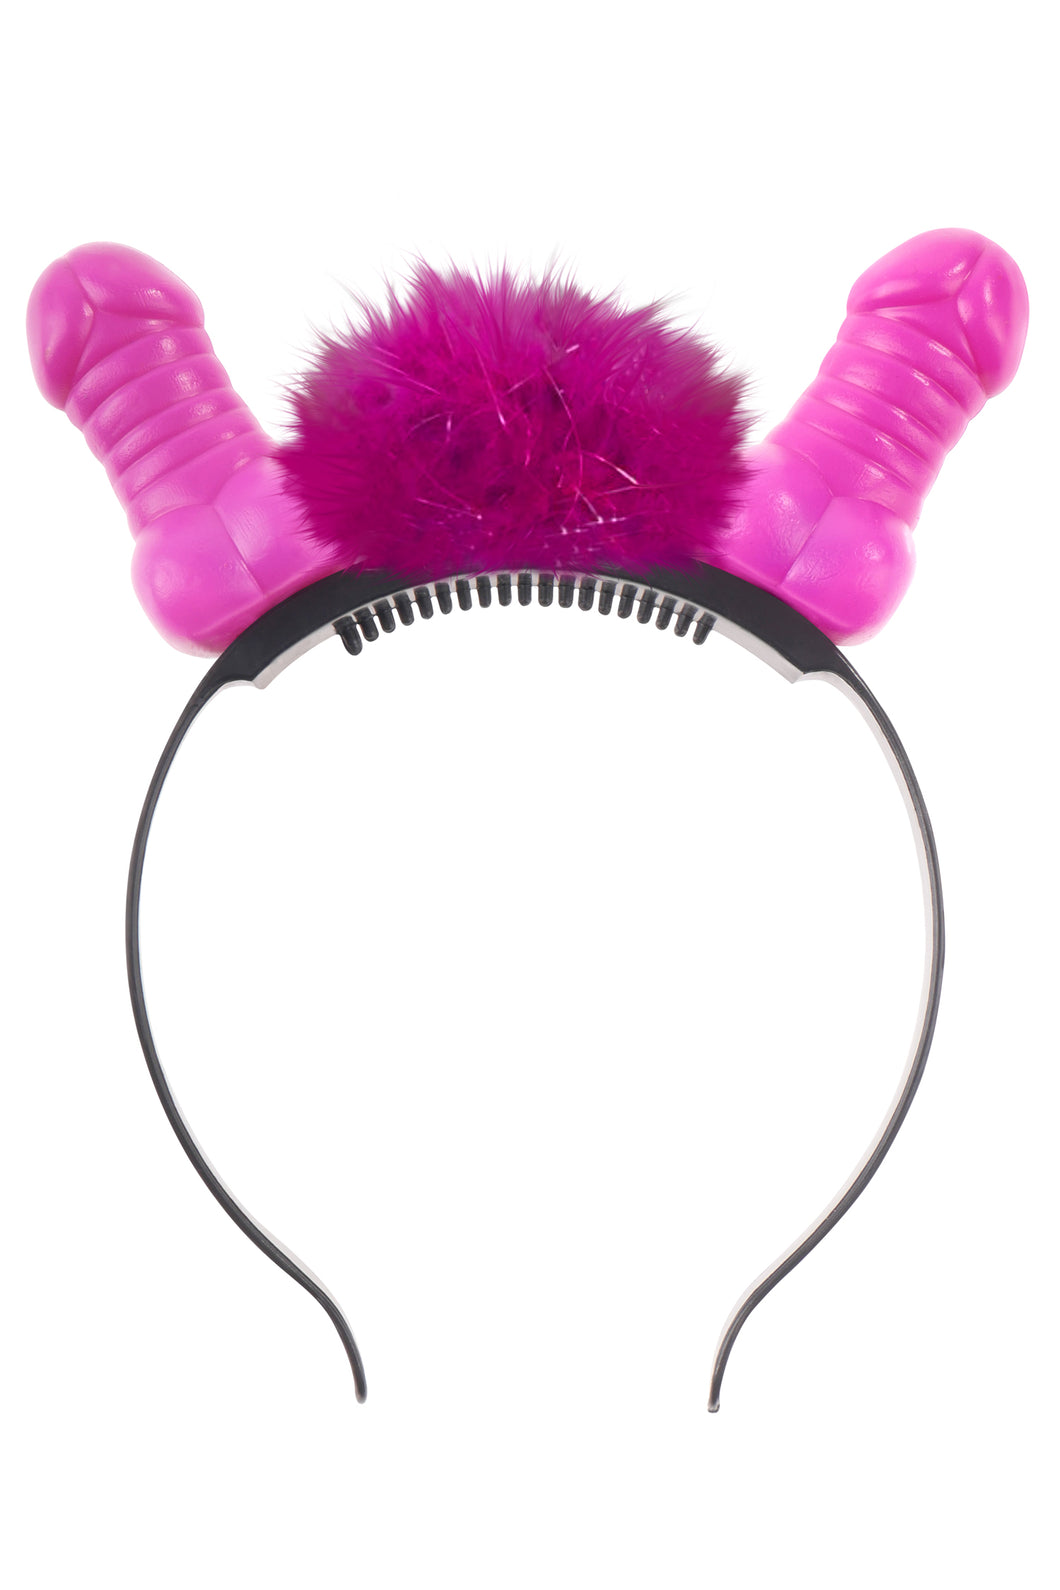 Bachelorette Party Favors Flashing Light-Up  Pecker Headband PD6612-00